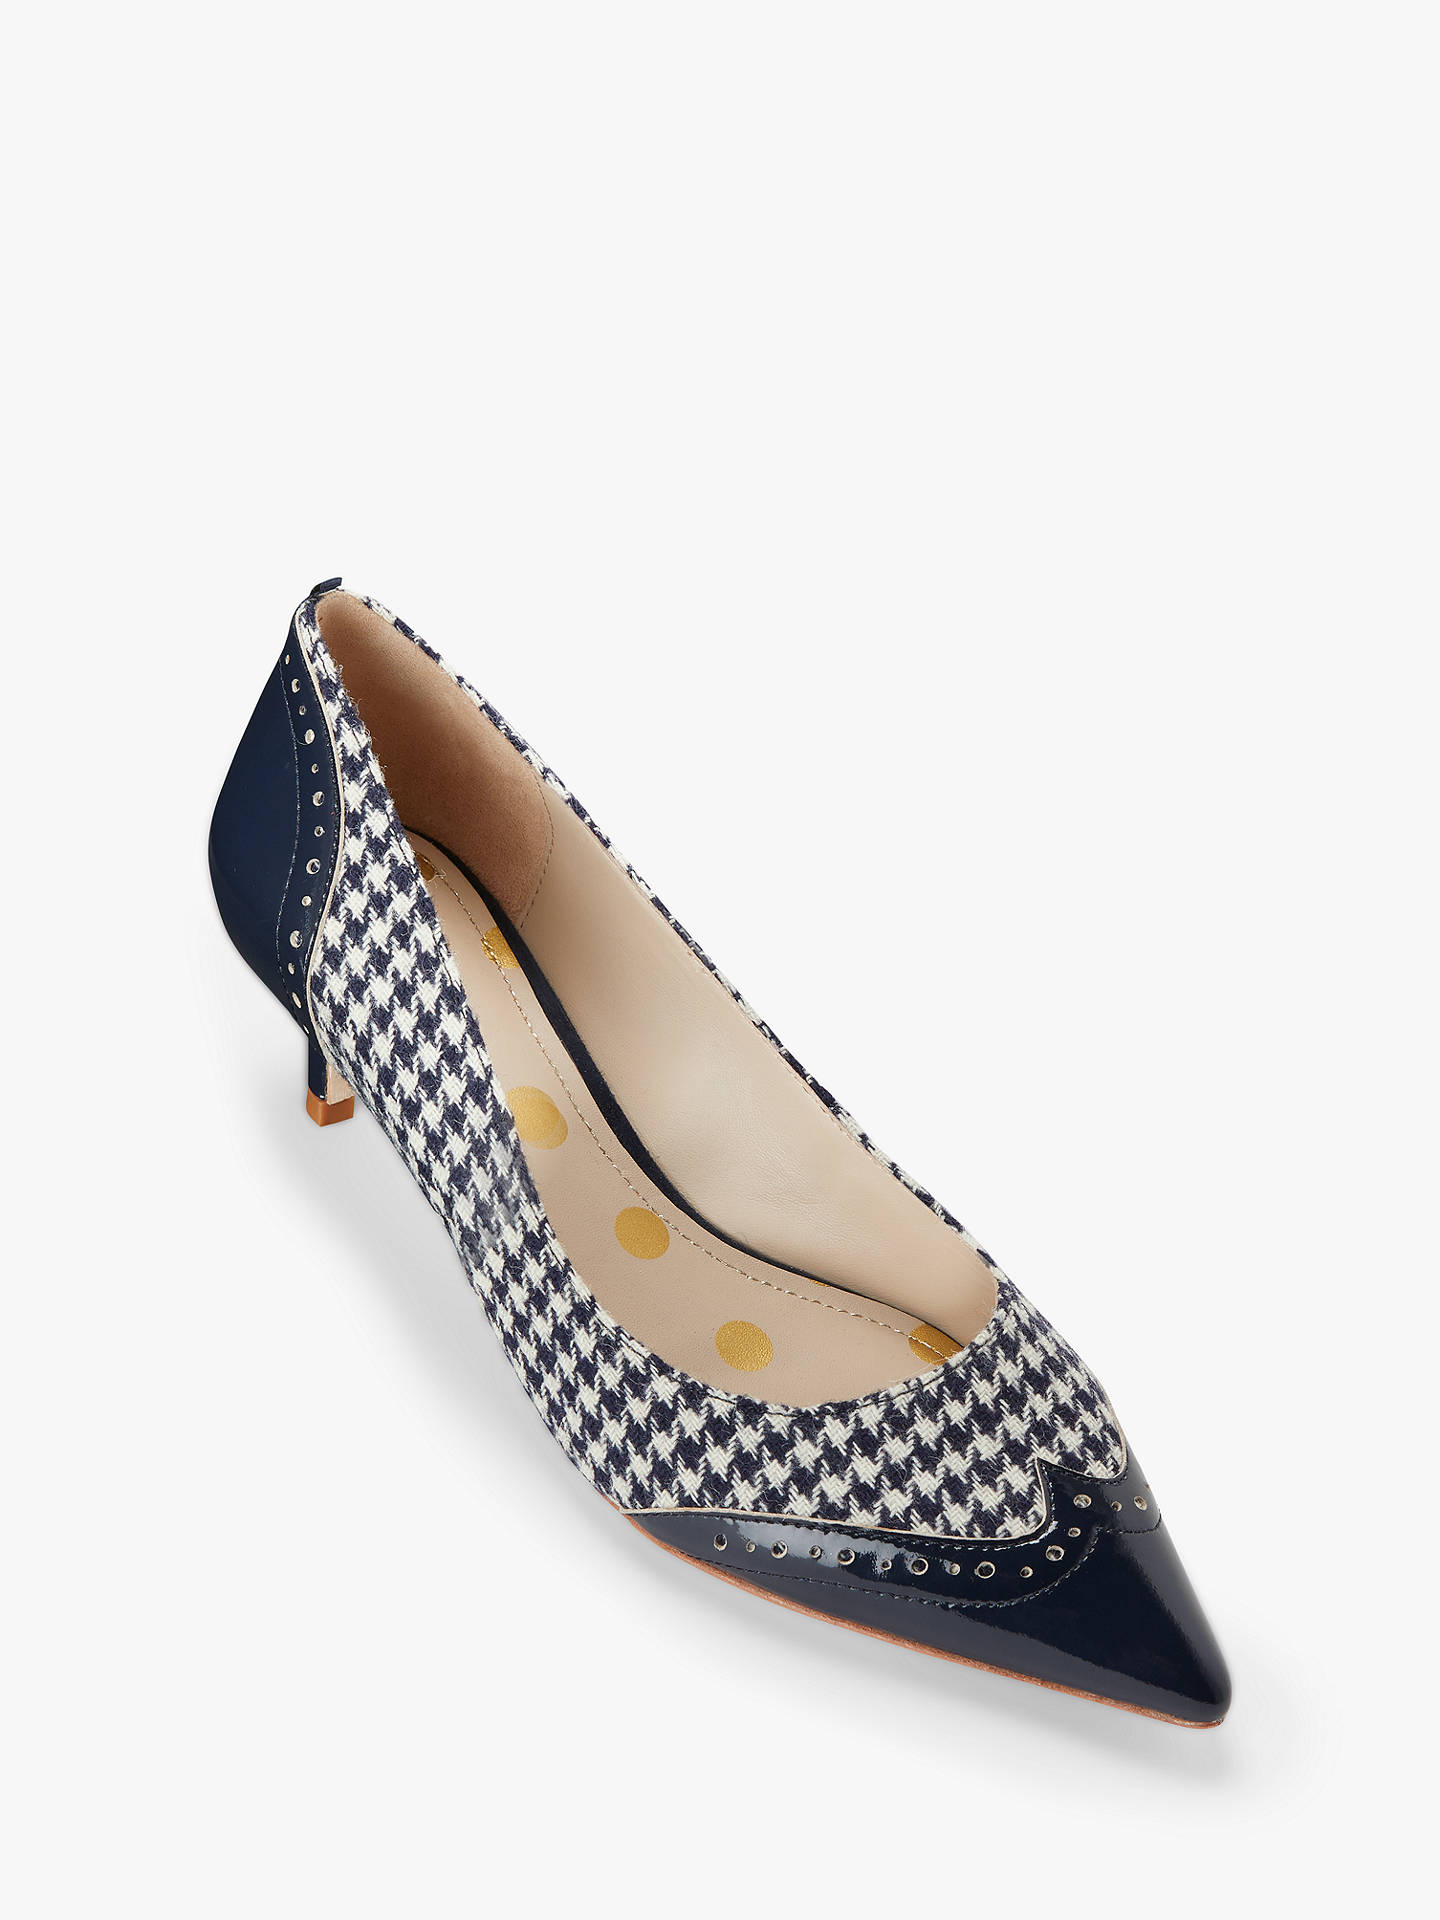 BuyBoden Rosamund Stiletto Kitten Court Shoes, Navy/Ivory Dogtooth Leather, 5 Online at johnlewis.com